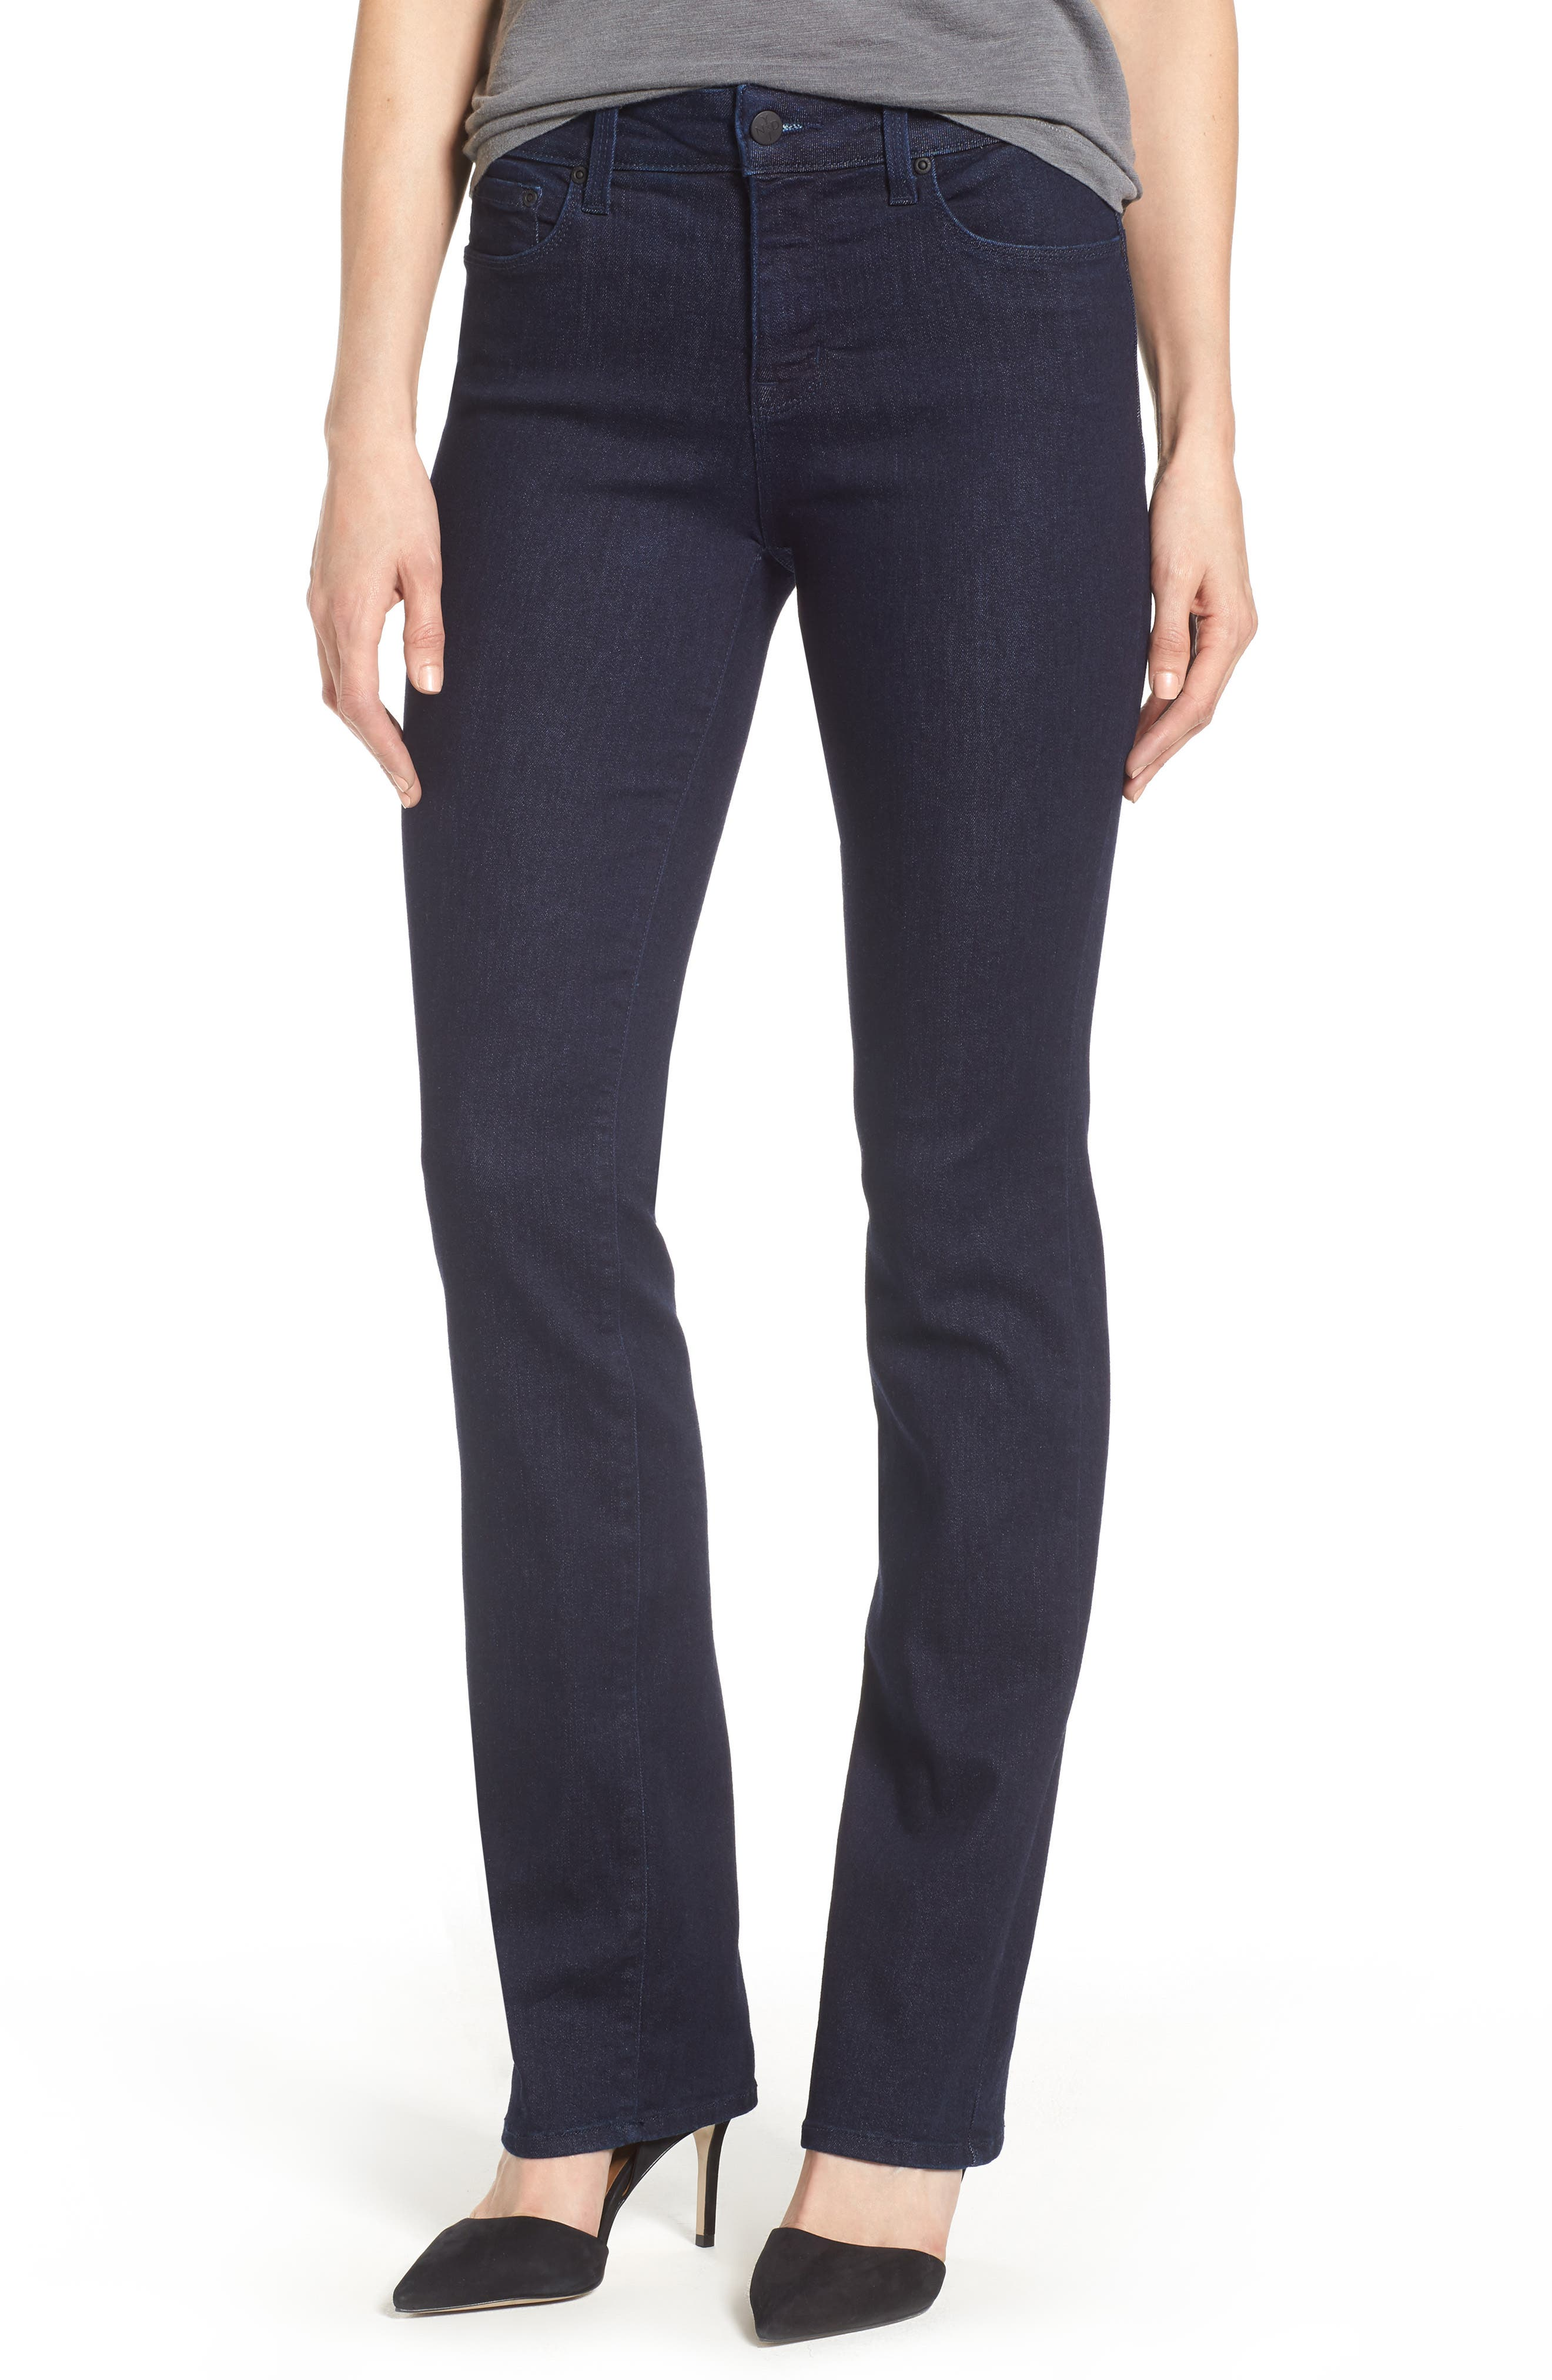 NYDJ Marilyn Stretch Straight Leg Jeans (Rinse) (Regular & Petite)